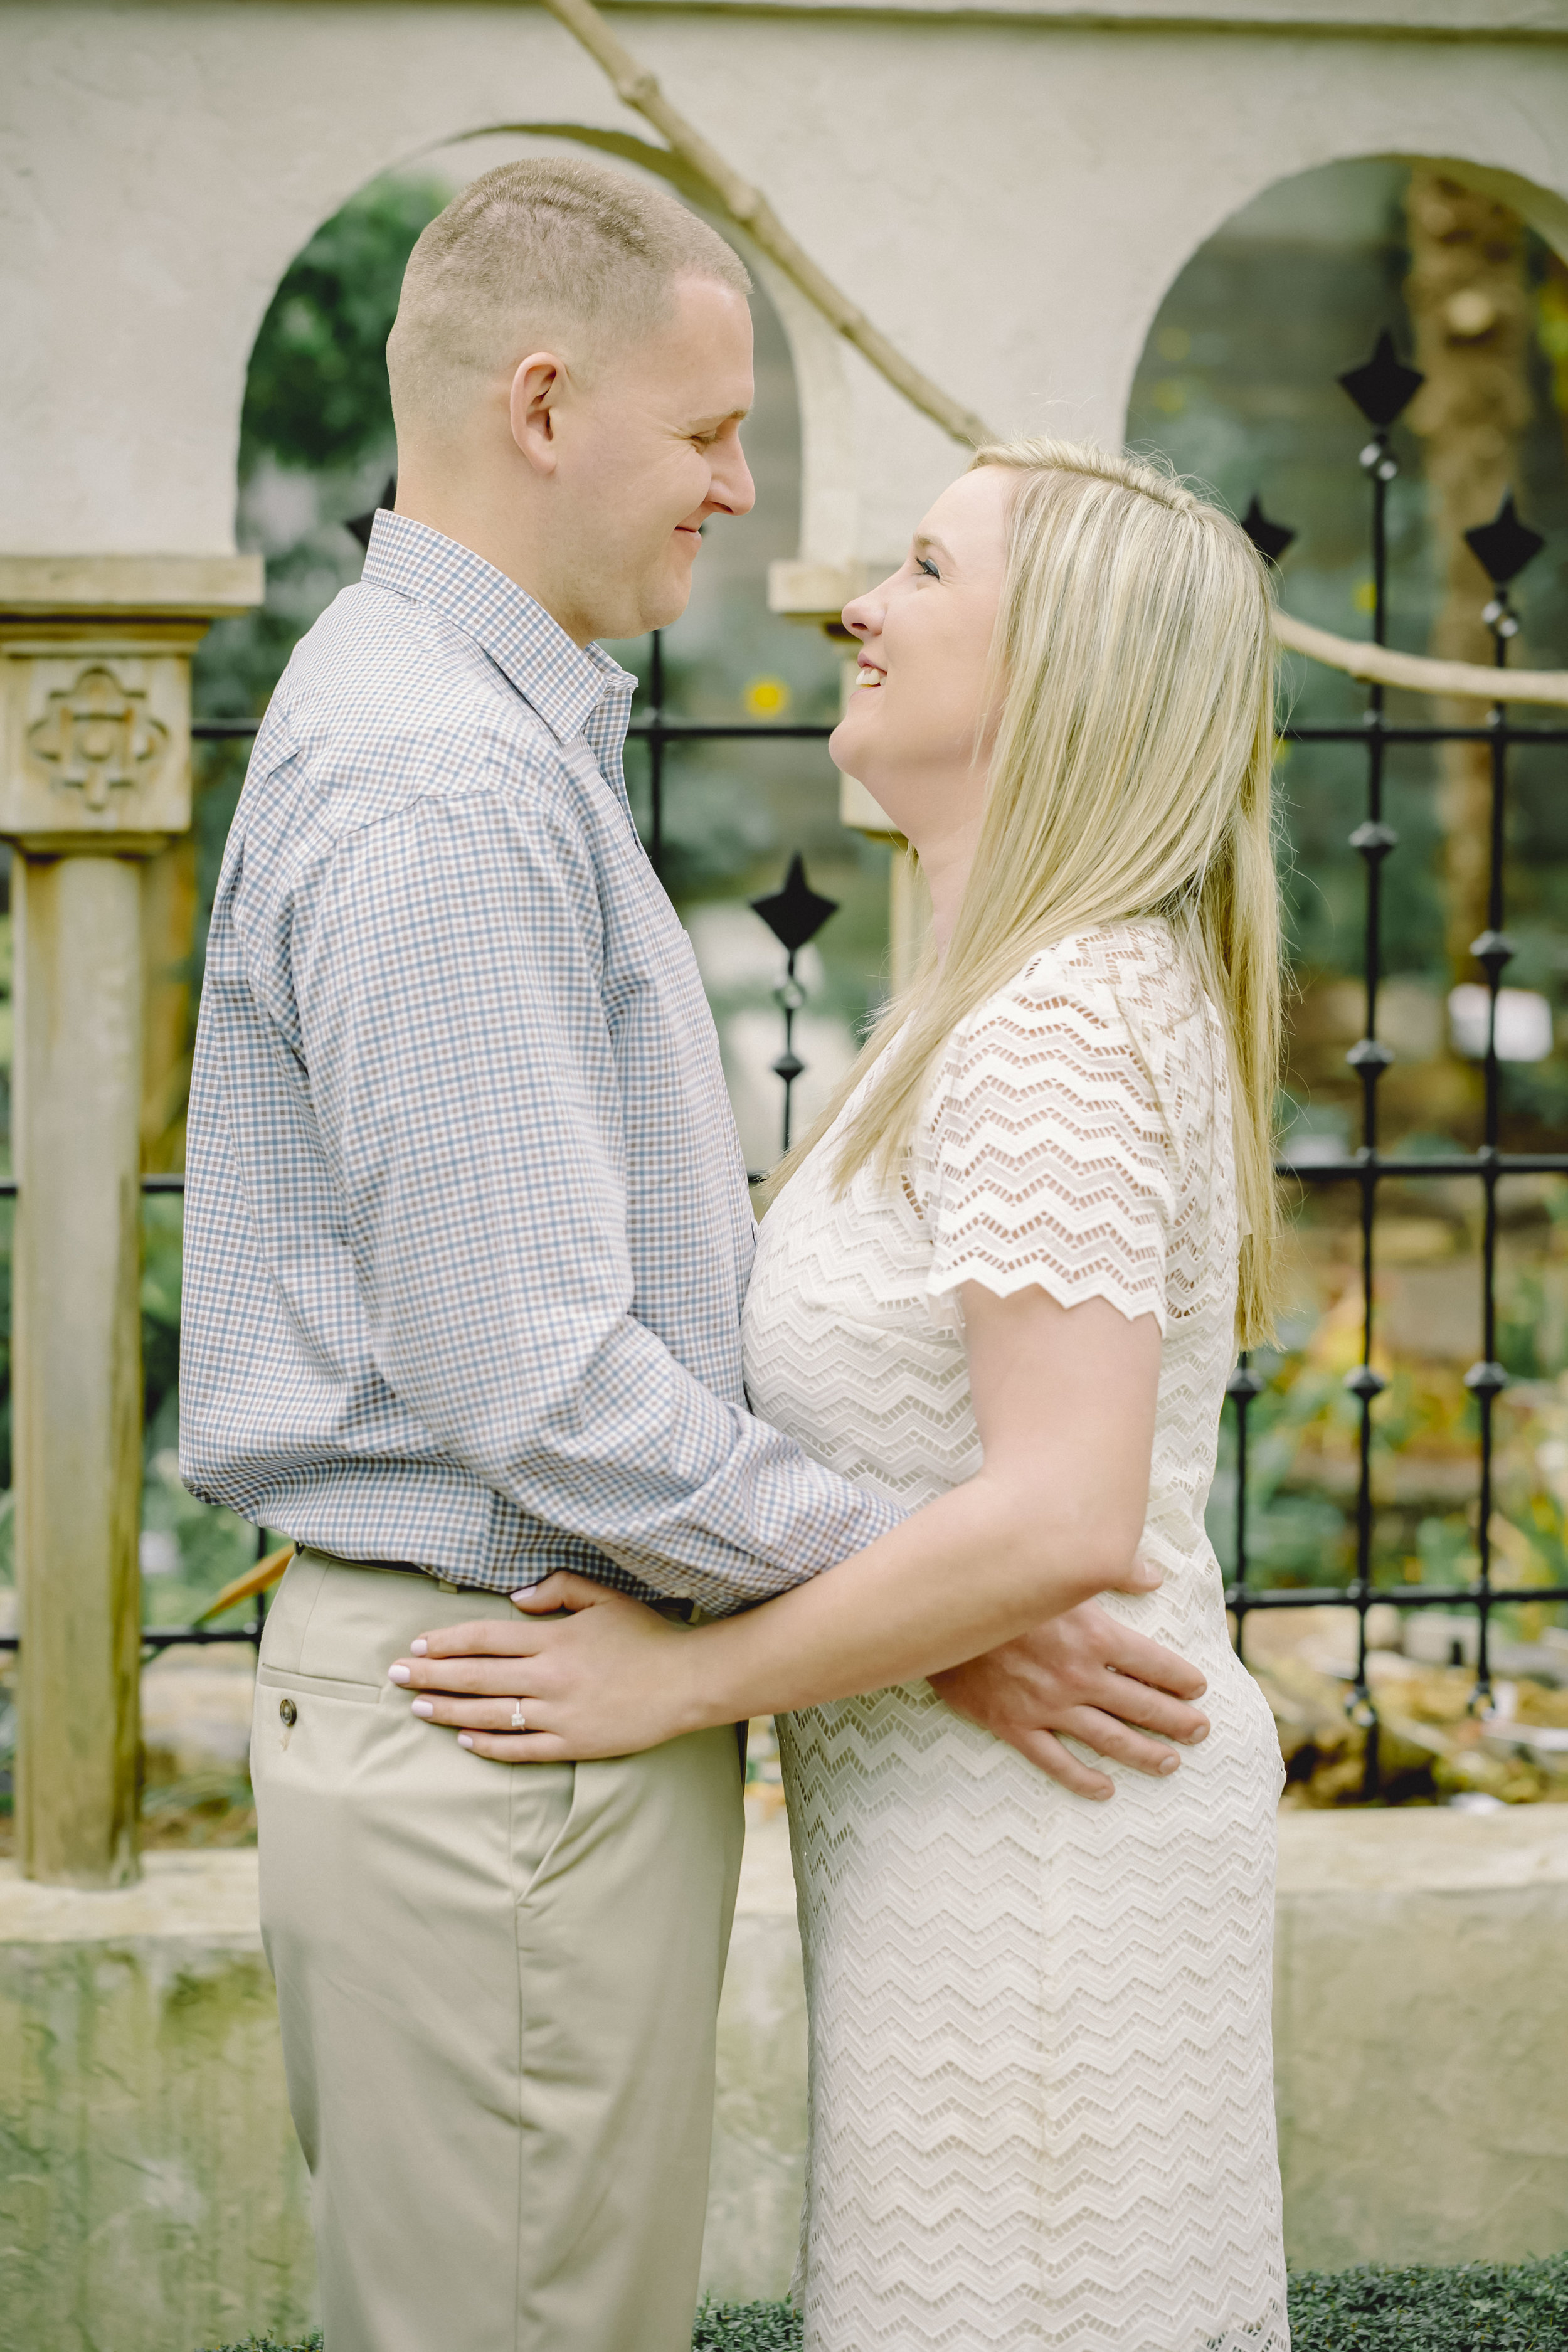 Rebecca_K_Clark_Photography_Engagement_Gallery_Web-31.JPG